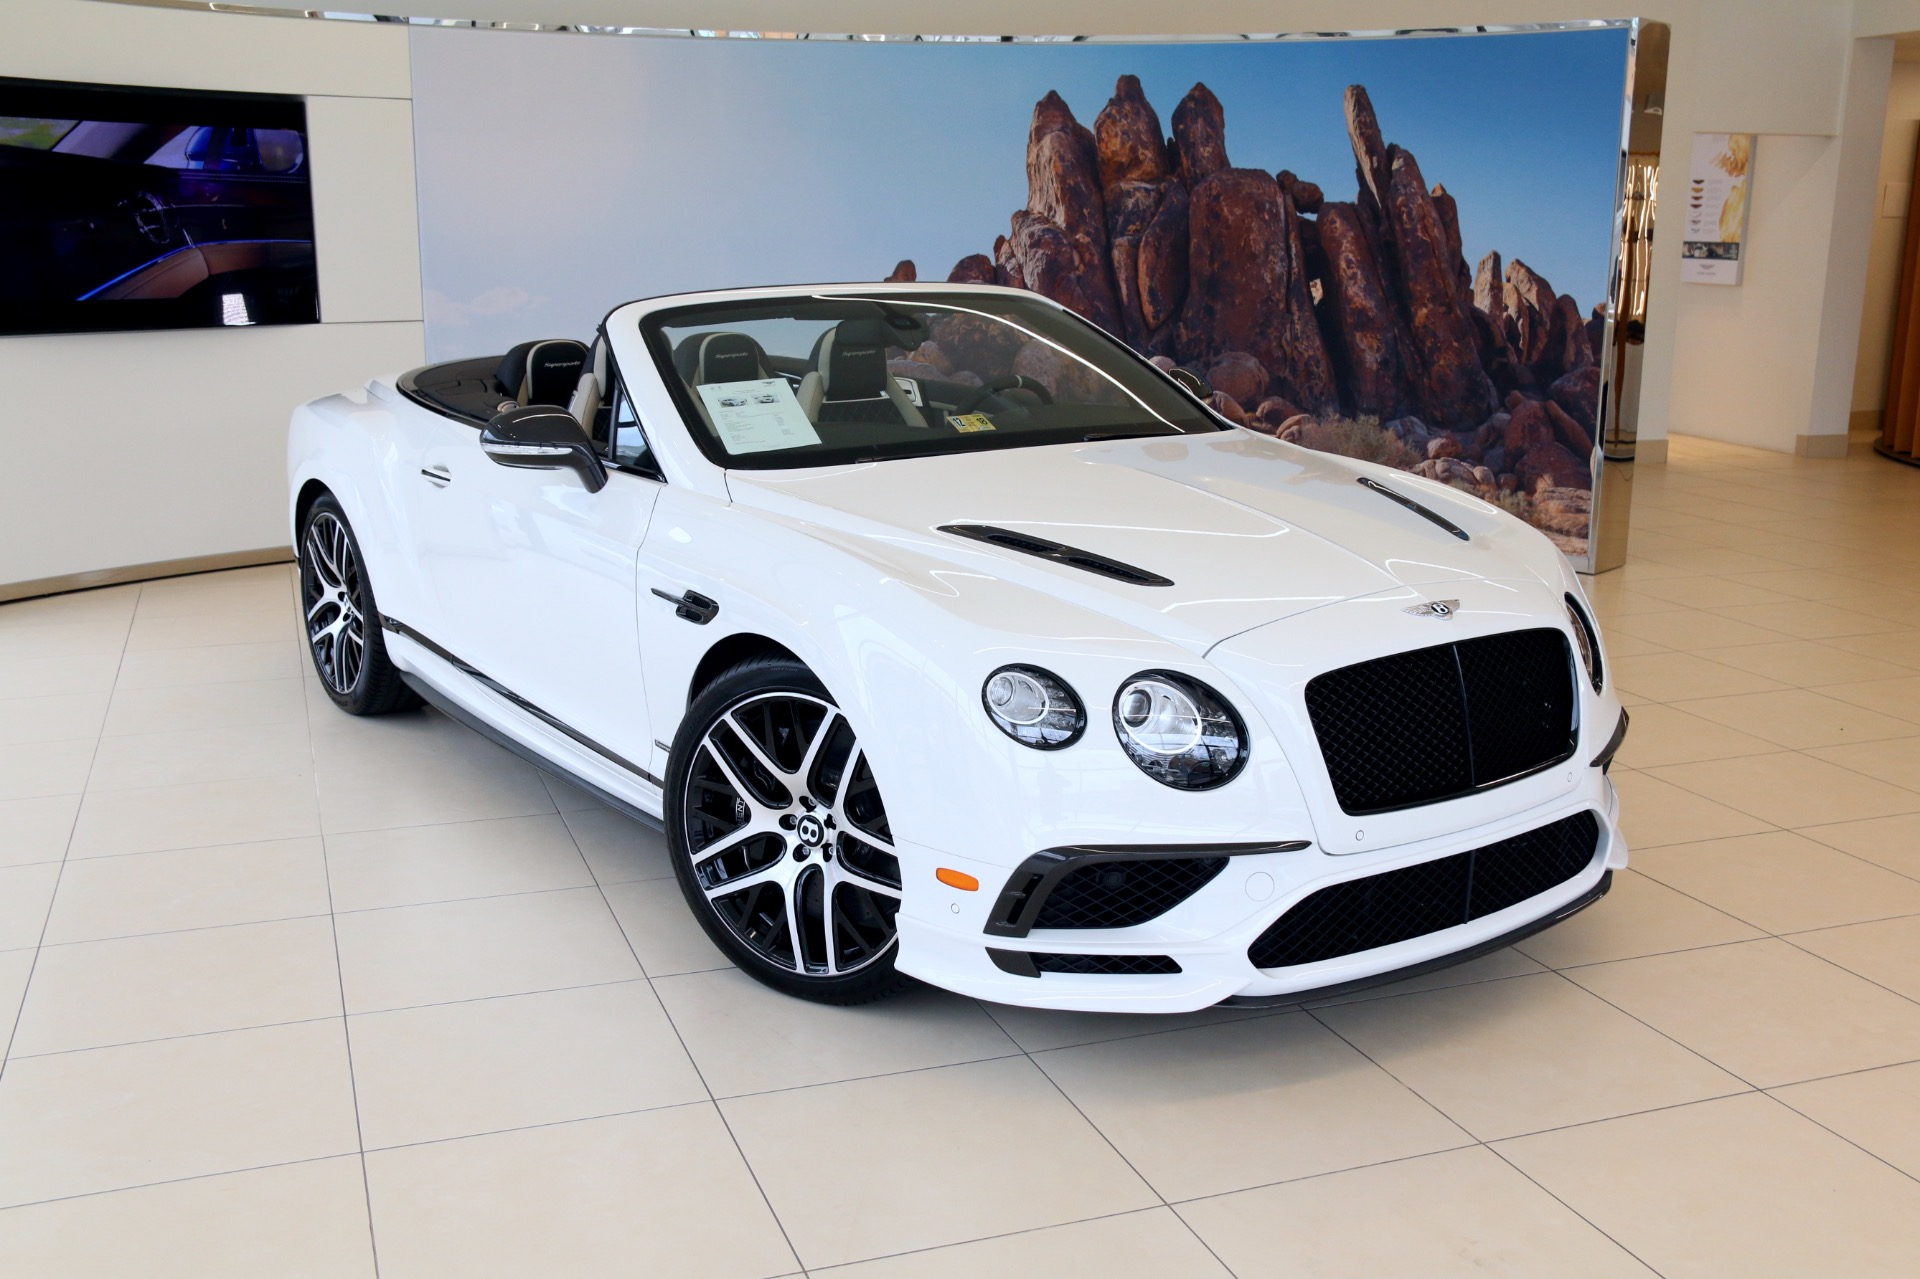 2018 bentley continental supersports stock 8n067163 for sale near vienna va va bentley. Black Bedroom Furniture Sets. Home Design Ideas